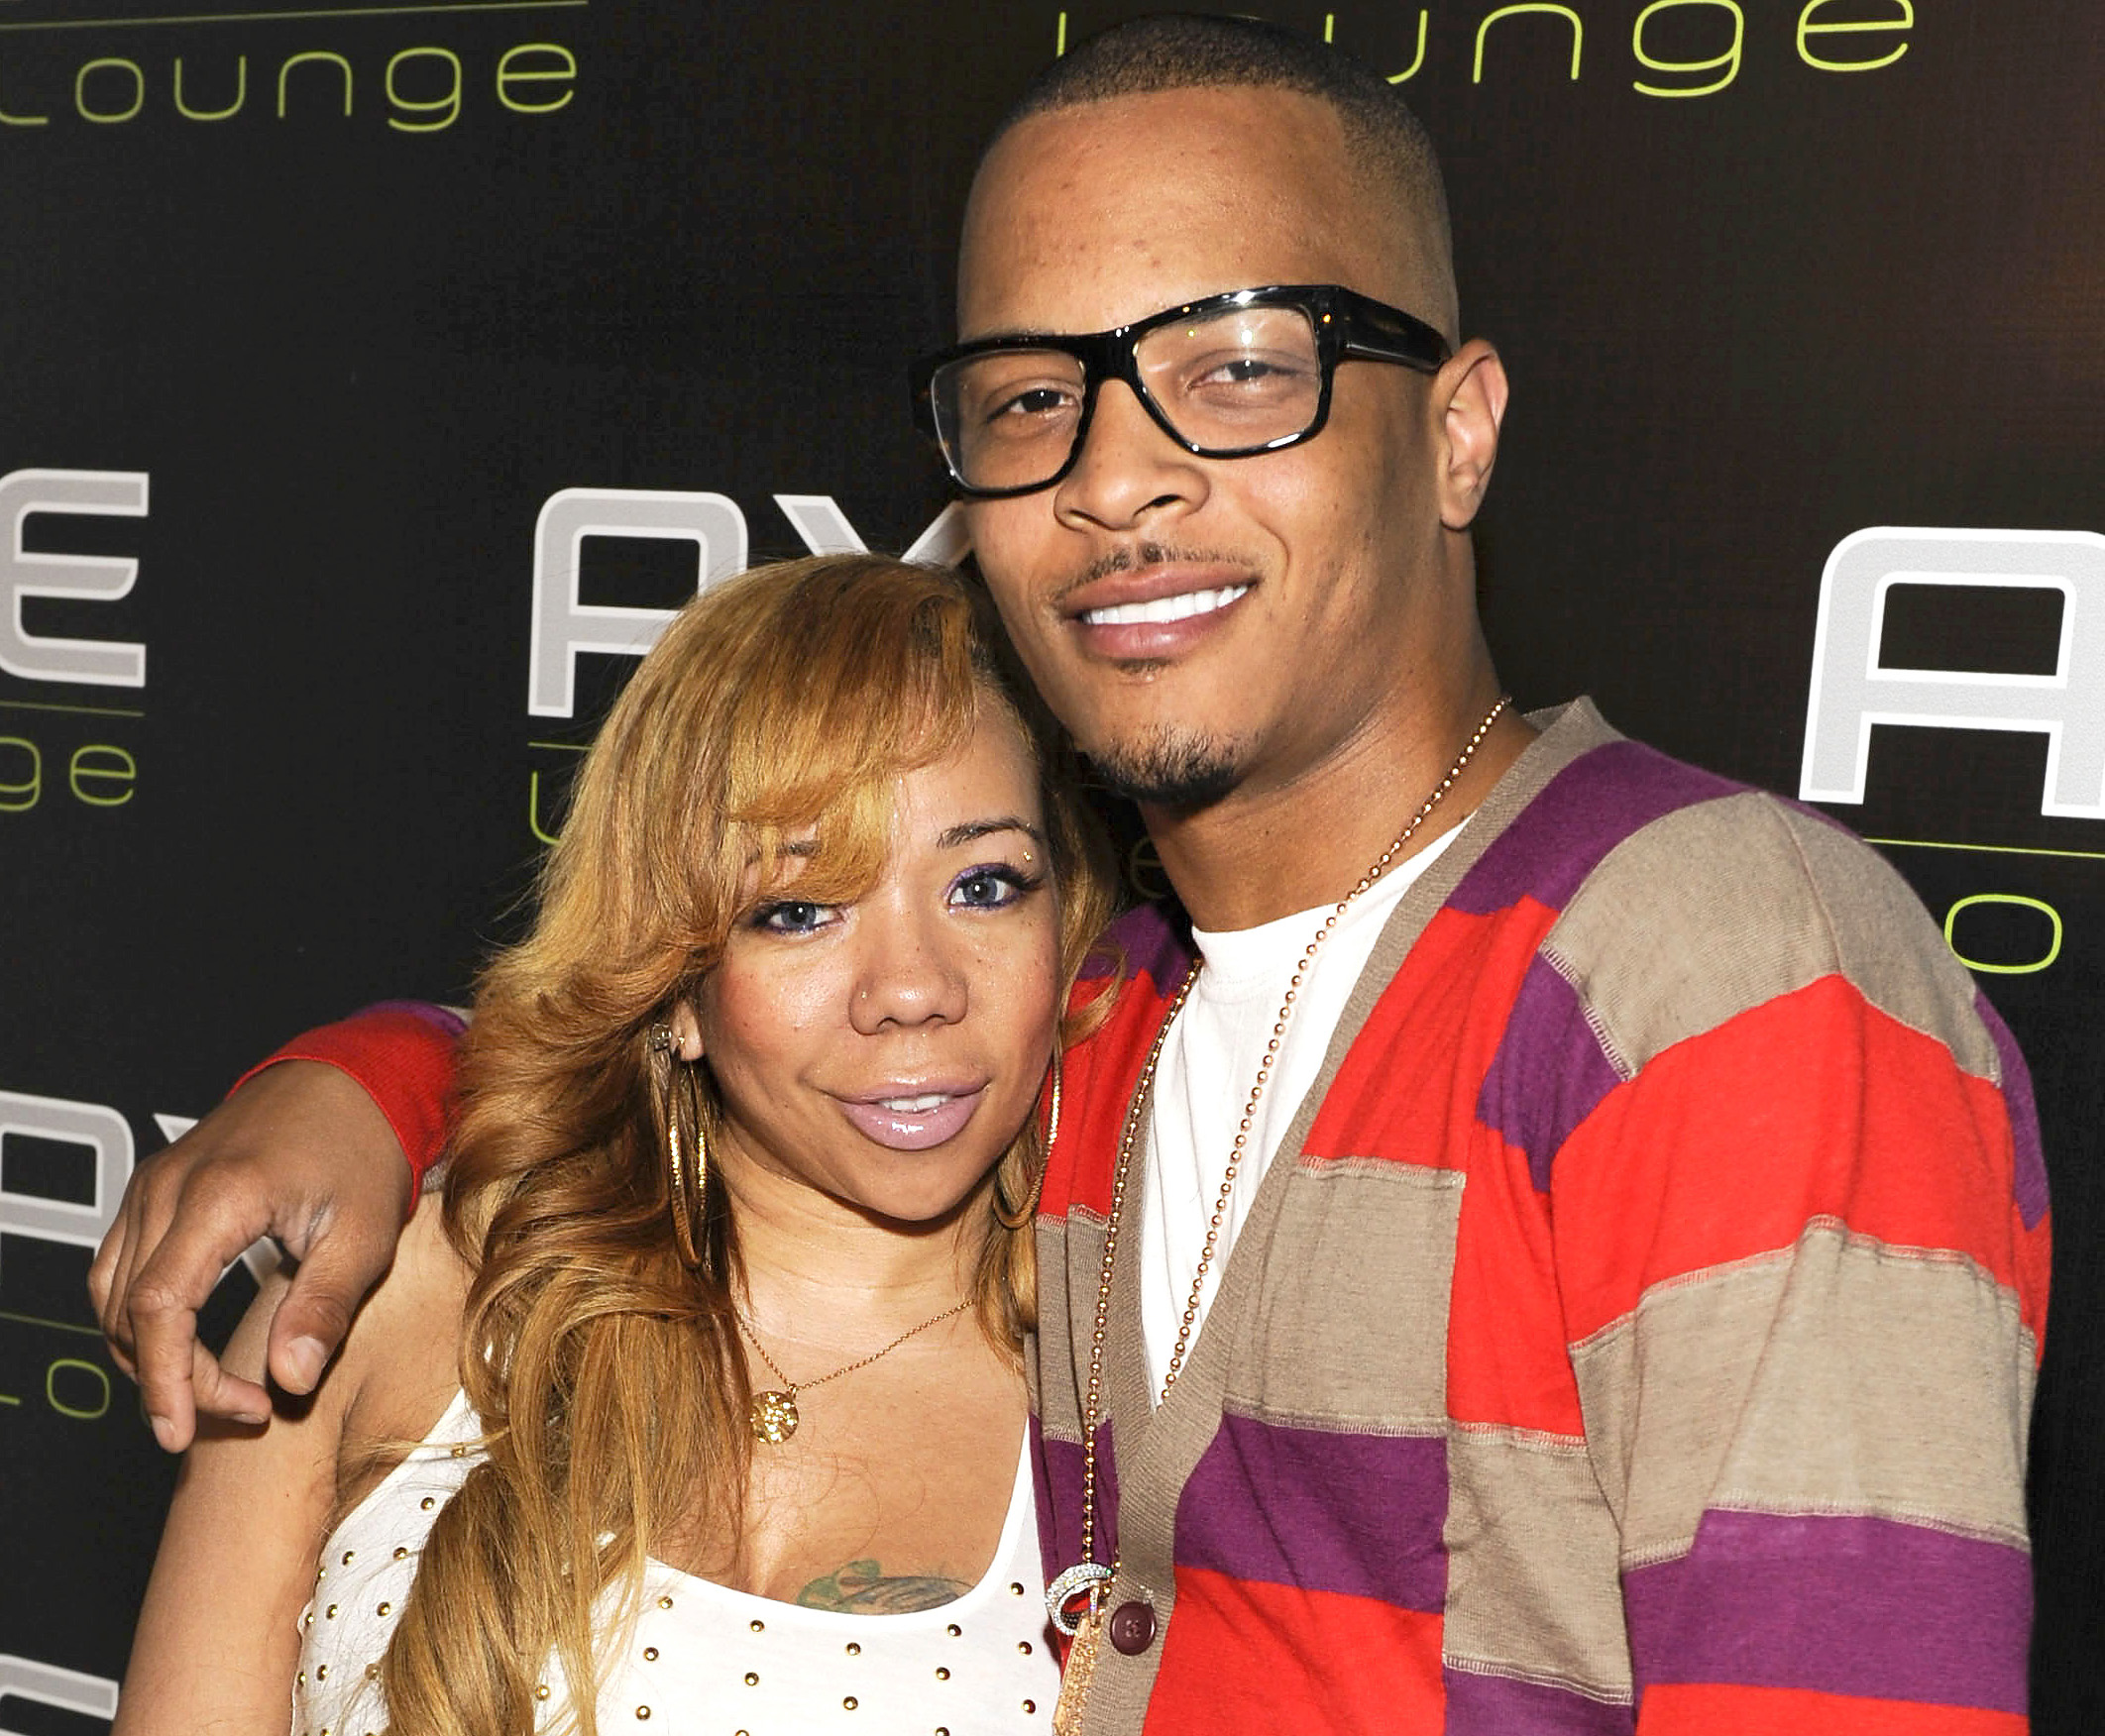 """SOUTHAMPTON, NY - AUGUST 13:  Tameka 'Tiny' Cottle and T.I visited the AXE Lounge in Southampton on Friday to announce that he is performing a secret show to kick off the """"AXE Music One Night Only"""" concert series in Manhattan on Monday night on August 13, 2010 in Southampton, New York.  (Photo by Eugene Gologursky/Getty Images for AXE) *** Local Caption *** Tameka 'Tiny' Cottle;T.I"""